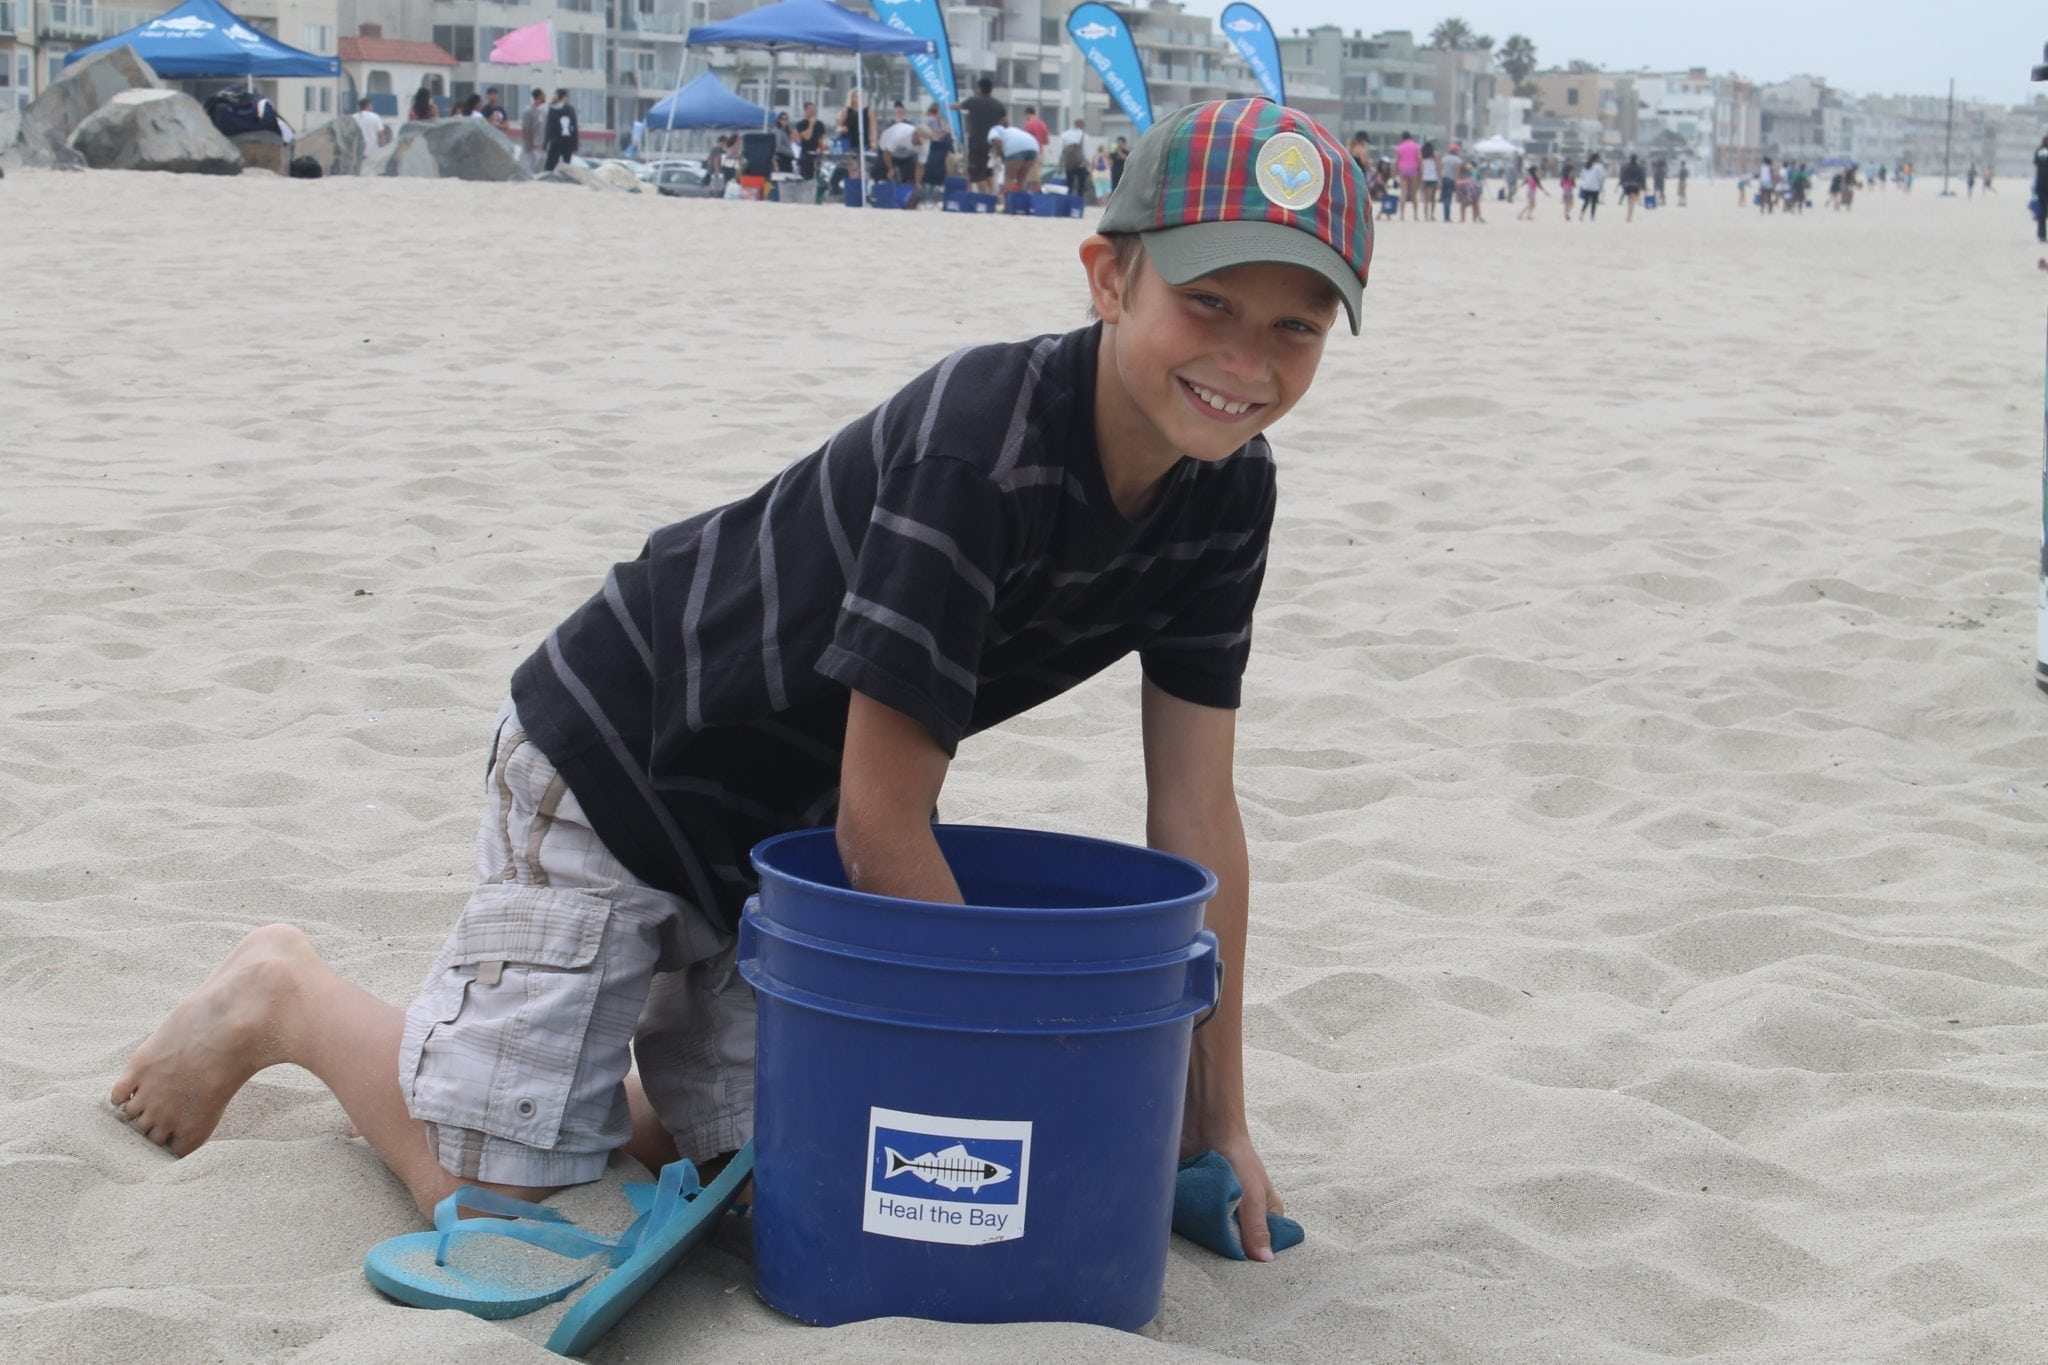 Heal The Bay's Beach Clean Up & Earth Day Celebration